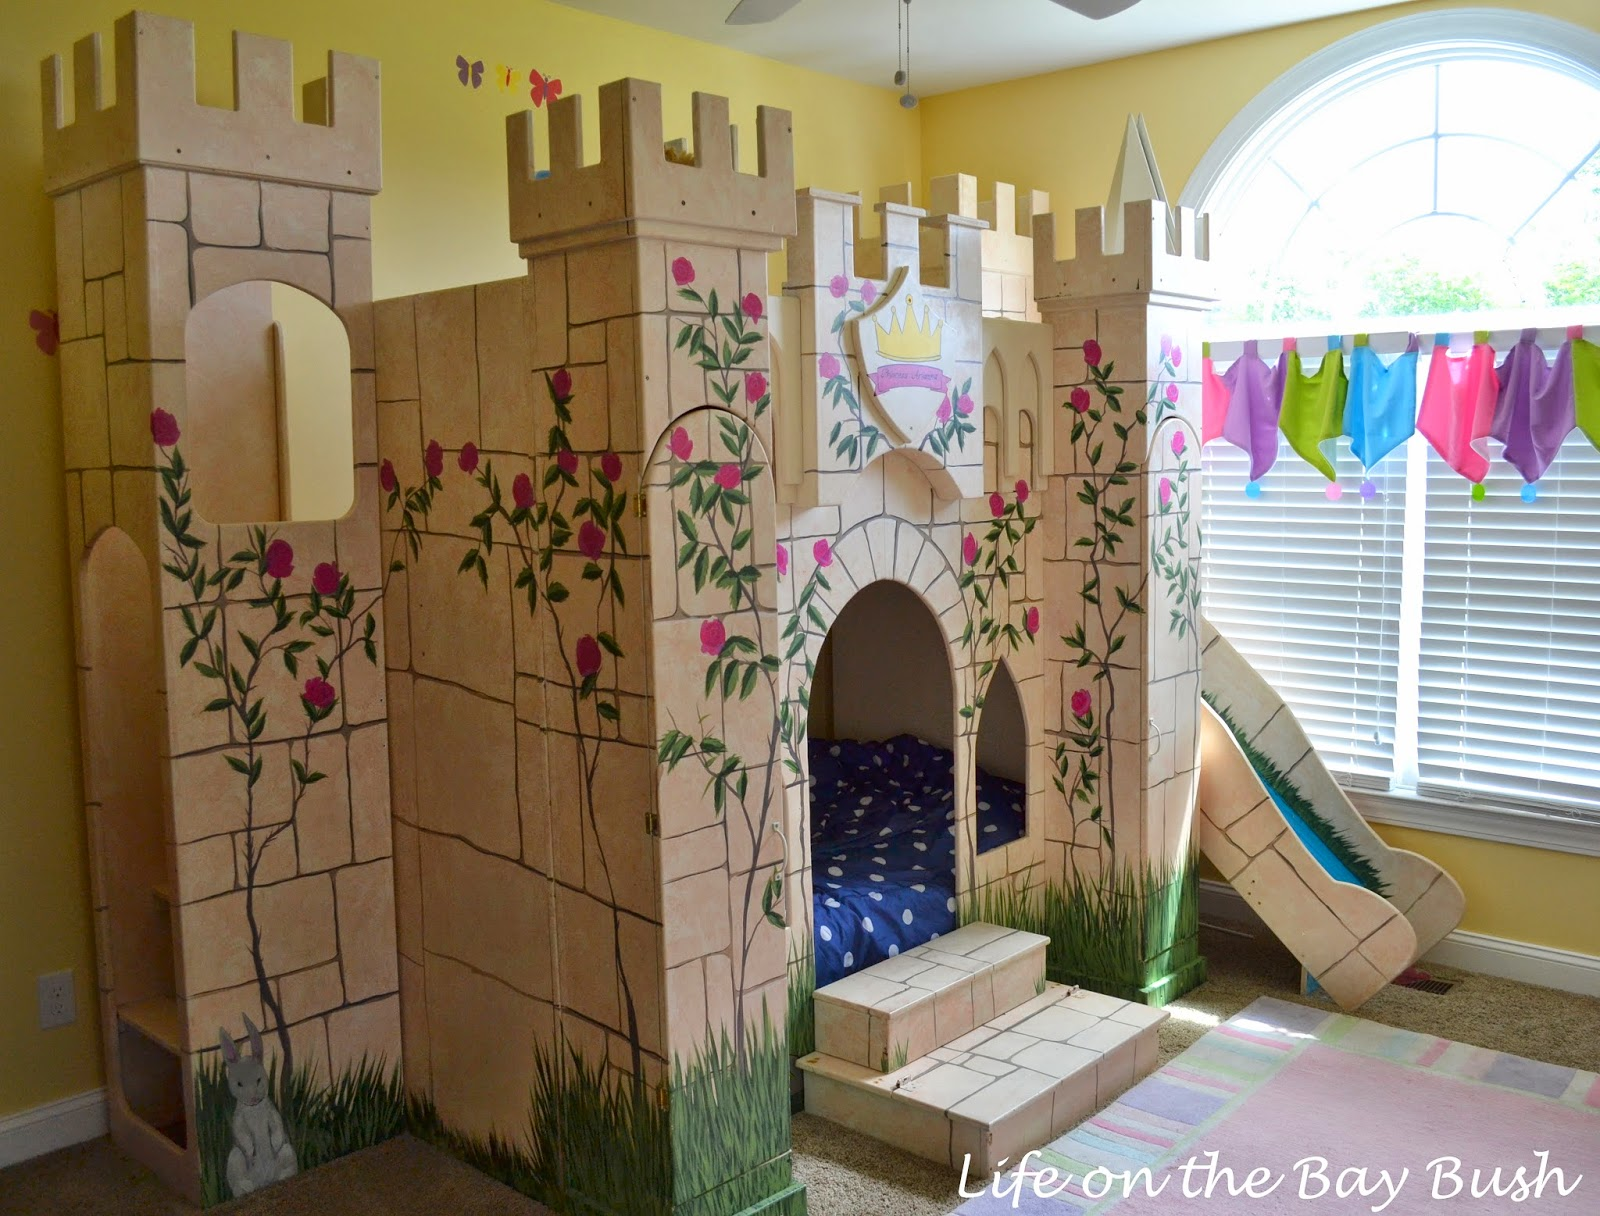 Castle Bunk Beds How To Bribe Your Children To Sleep By Themselves Life On The Bay Bush